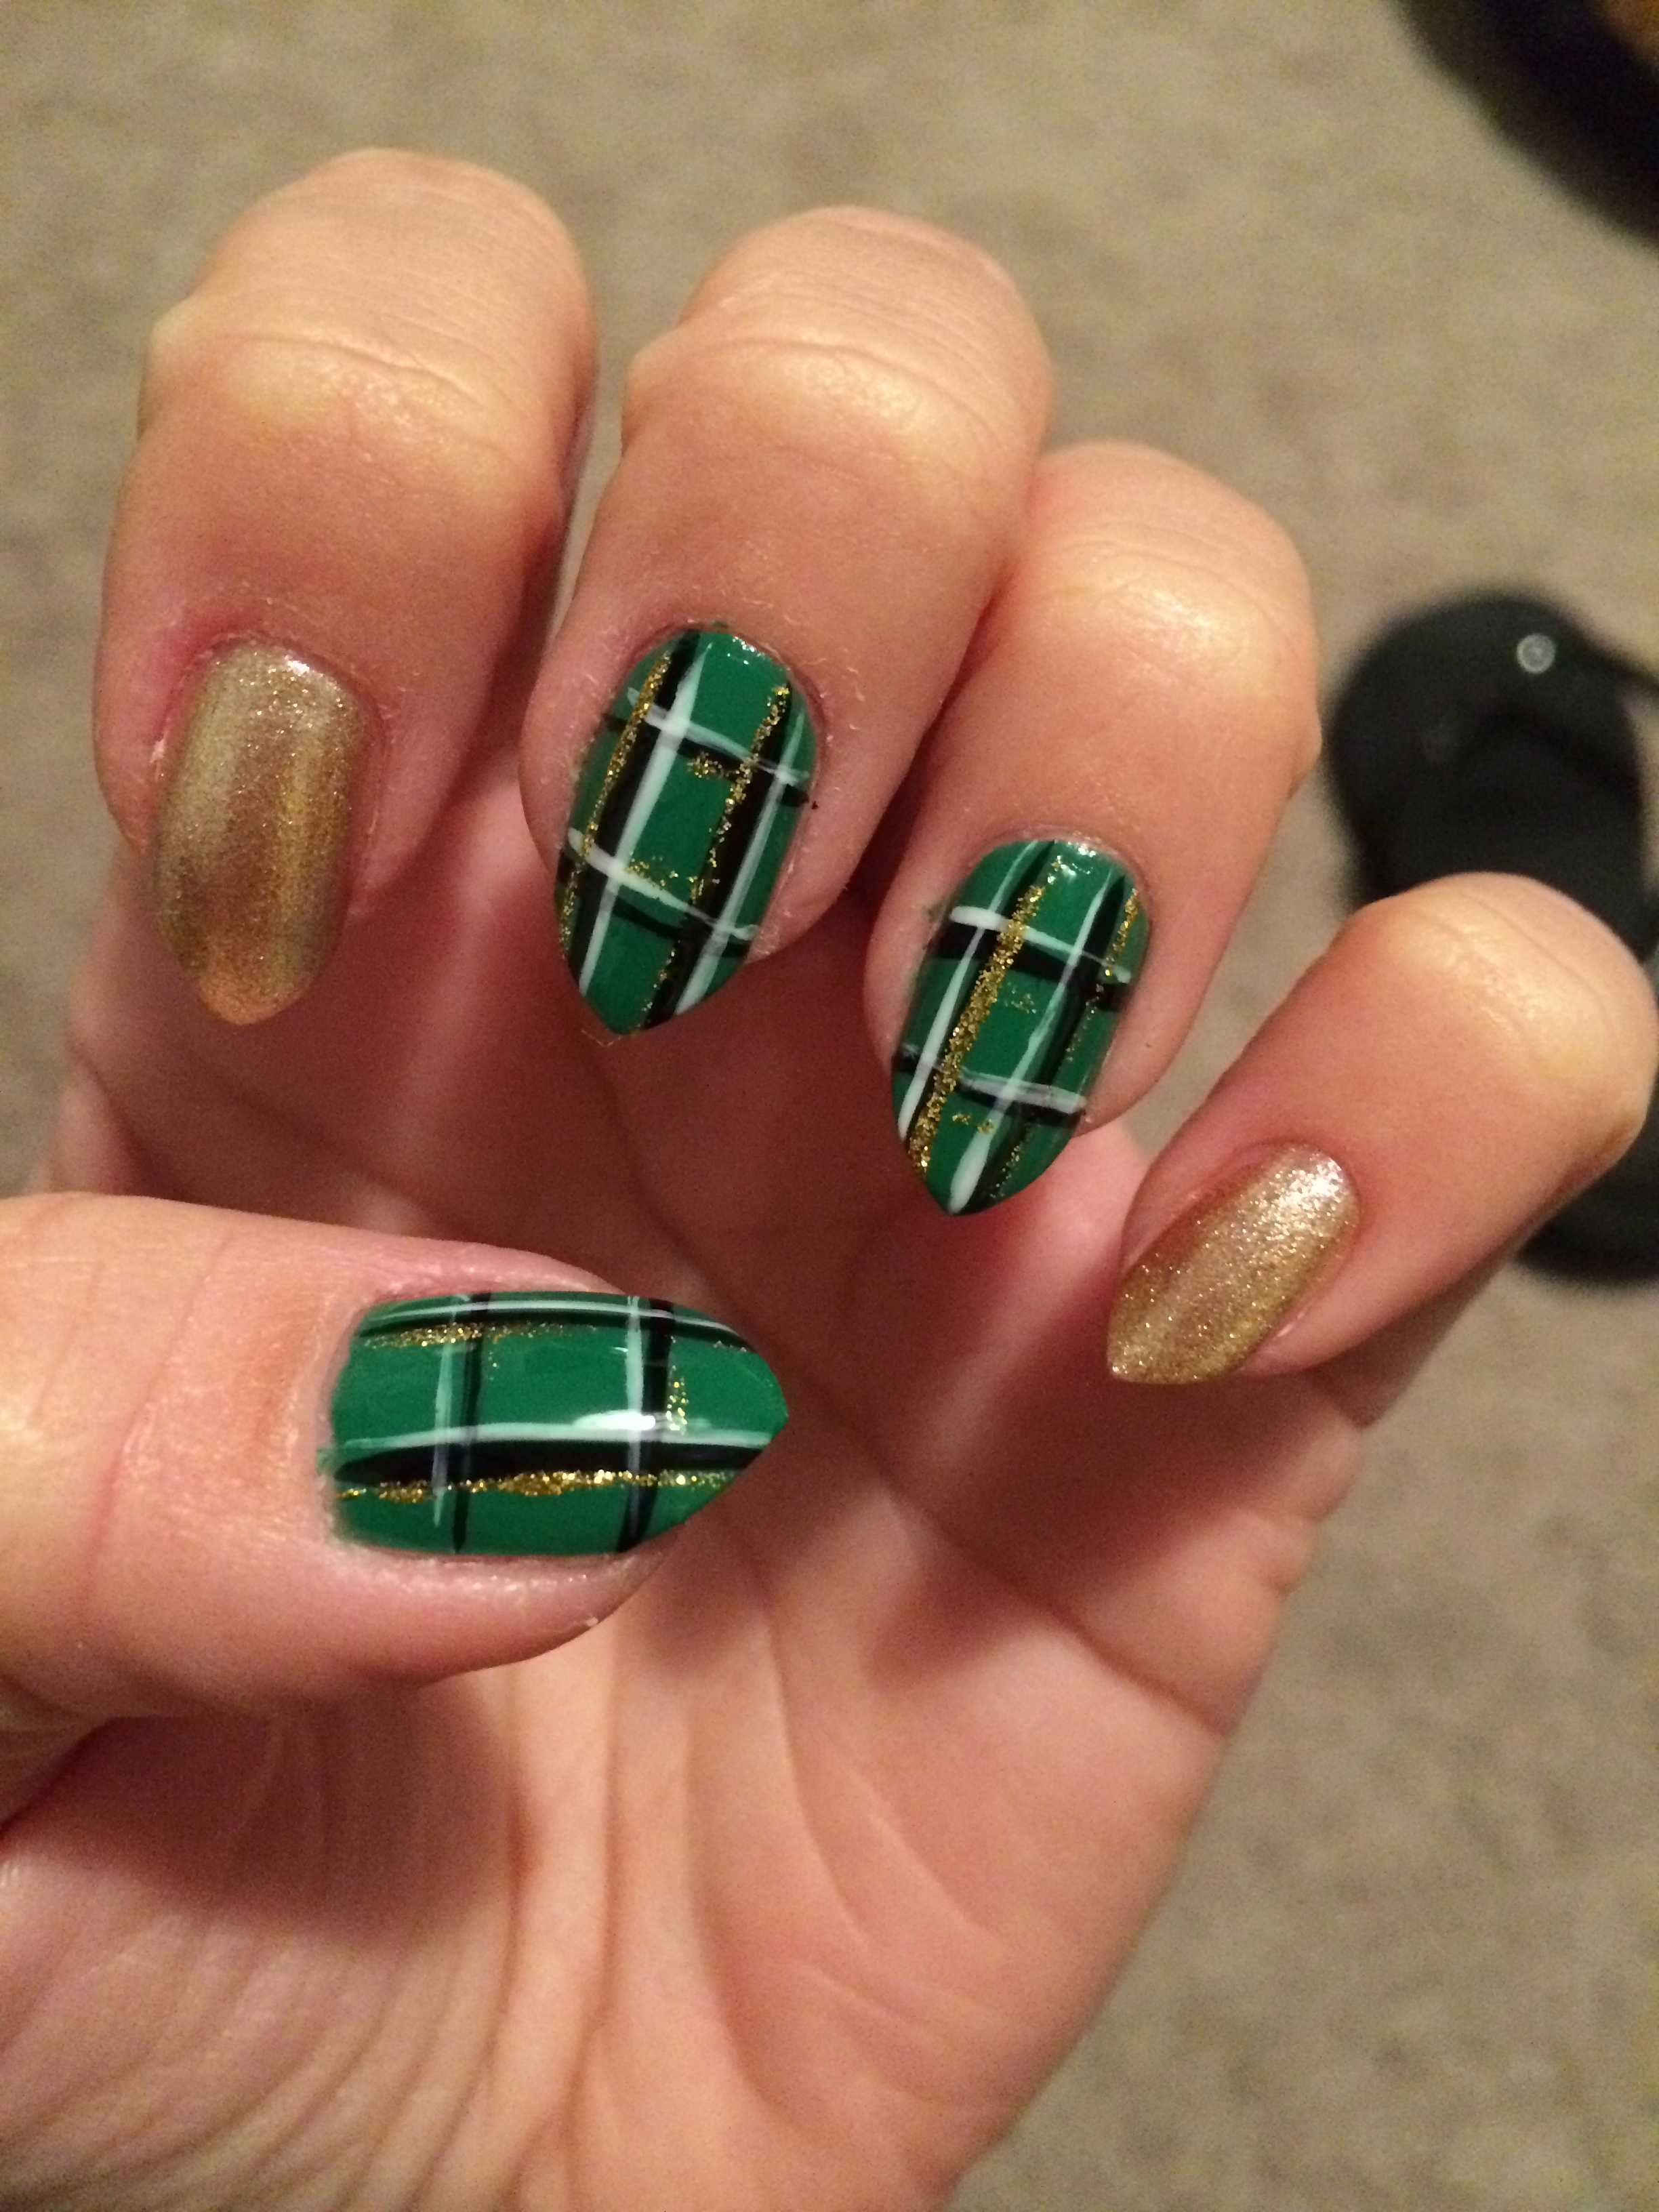 Plaid nail art all you need is a base color i picked sheswais dig it shade a white striper a black striper and an optional glitter striper i bought the kiss trio prinsesfo Choice Image